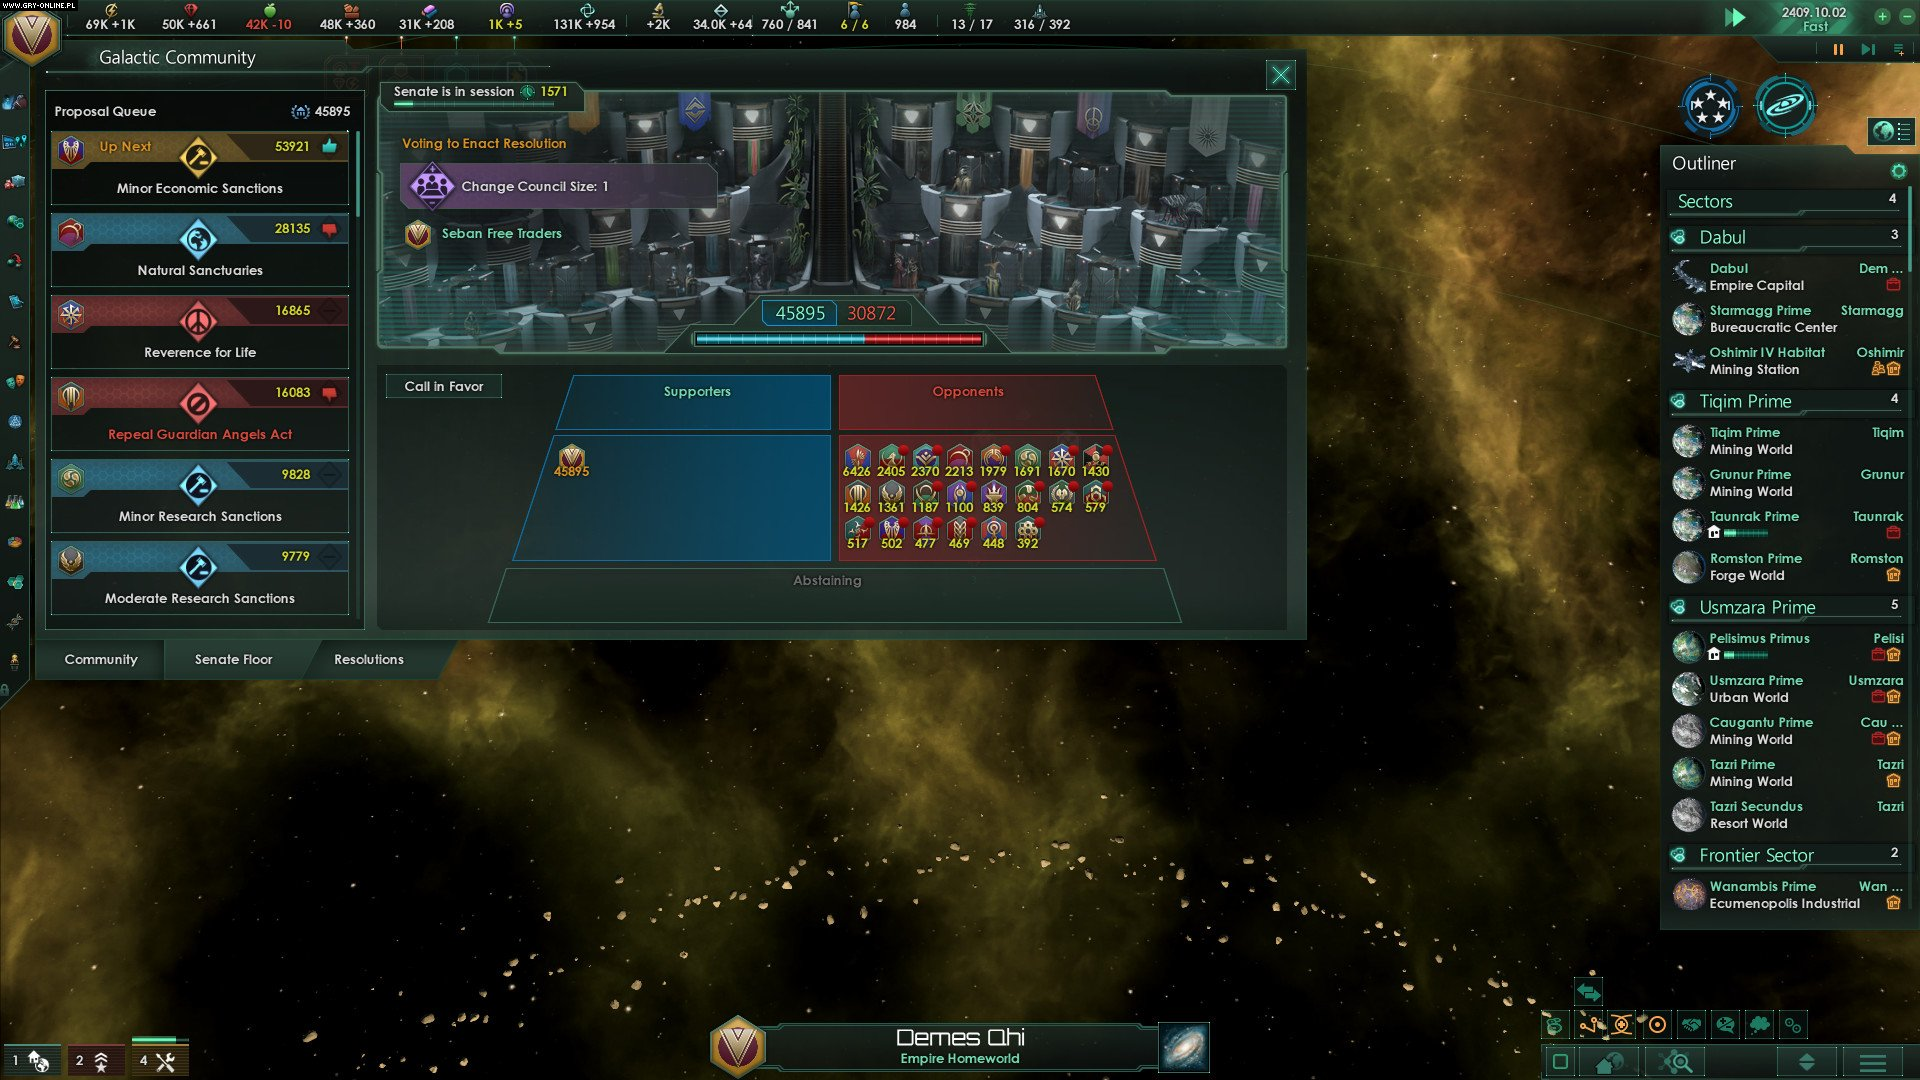 Stellaris: Federations PC Gry Screen 4/8, Paradox Development Studio, Paradox Interactive